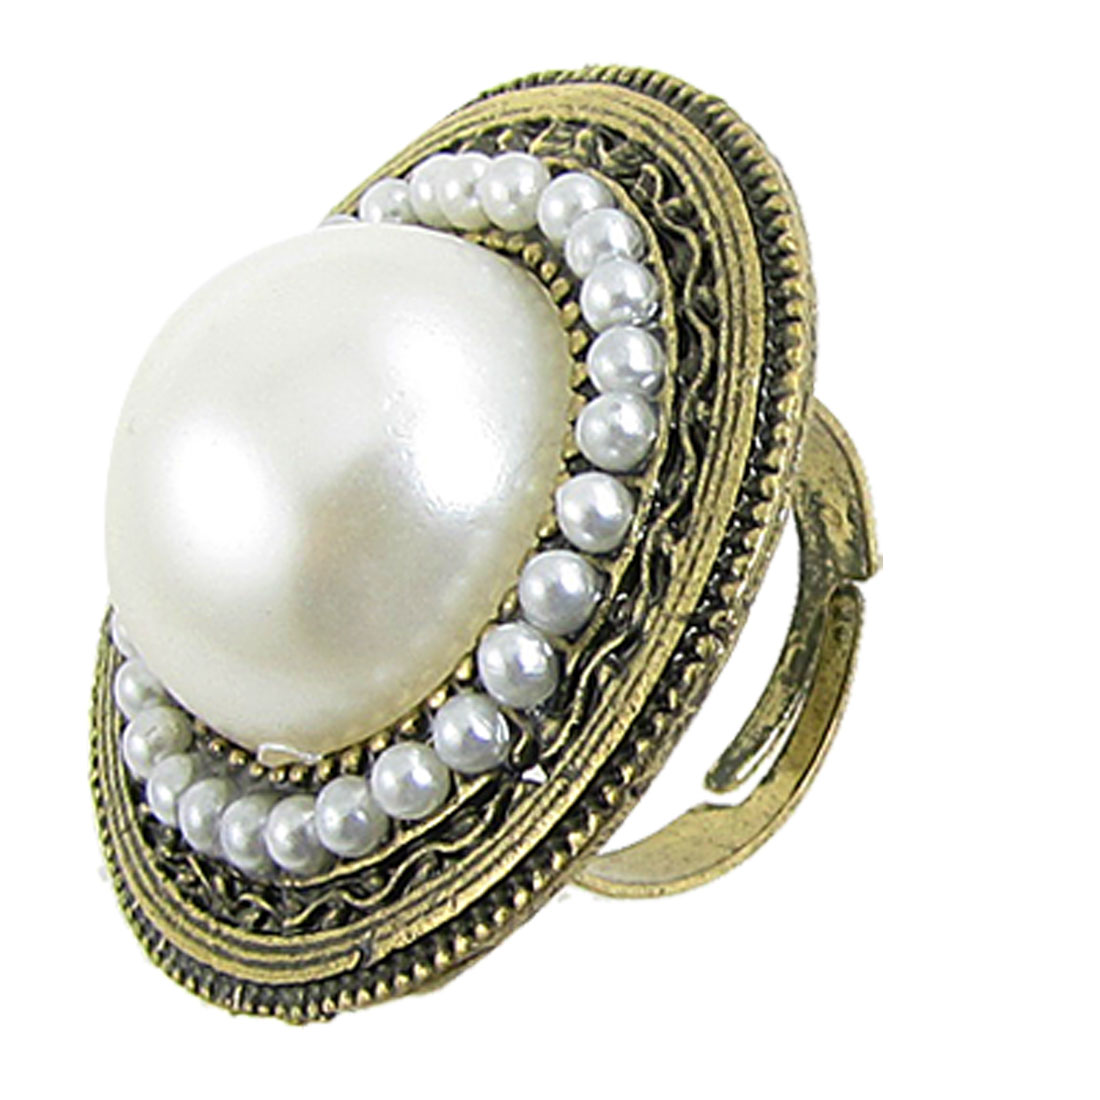 Women Round Faux Pearl Decor Finger Ring Bronze Tone White US 6 3/4